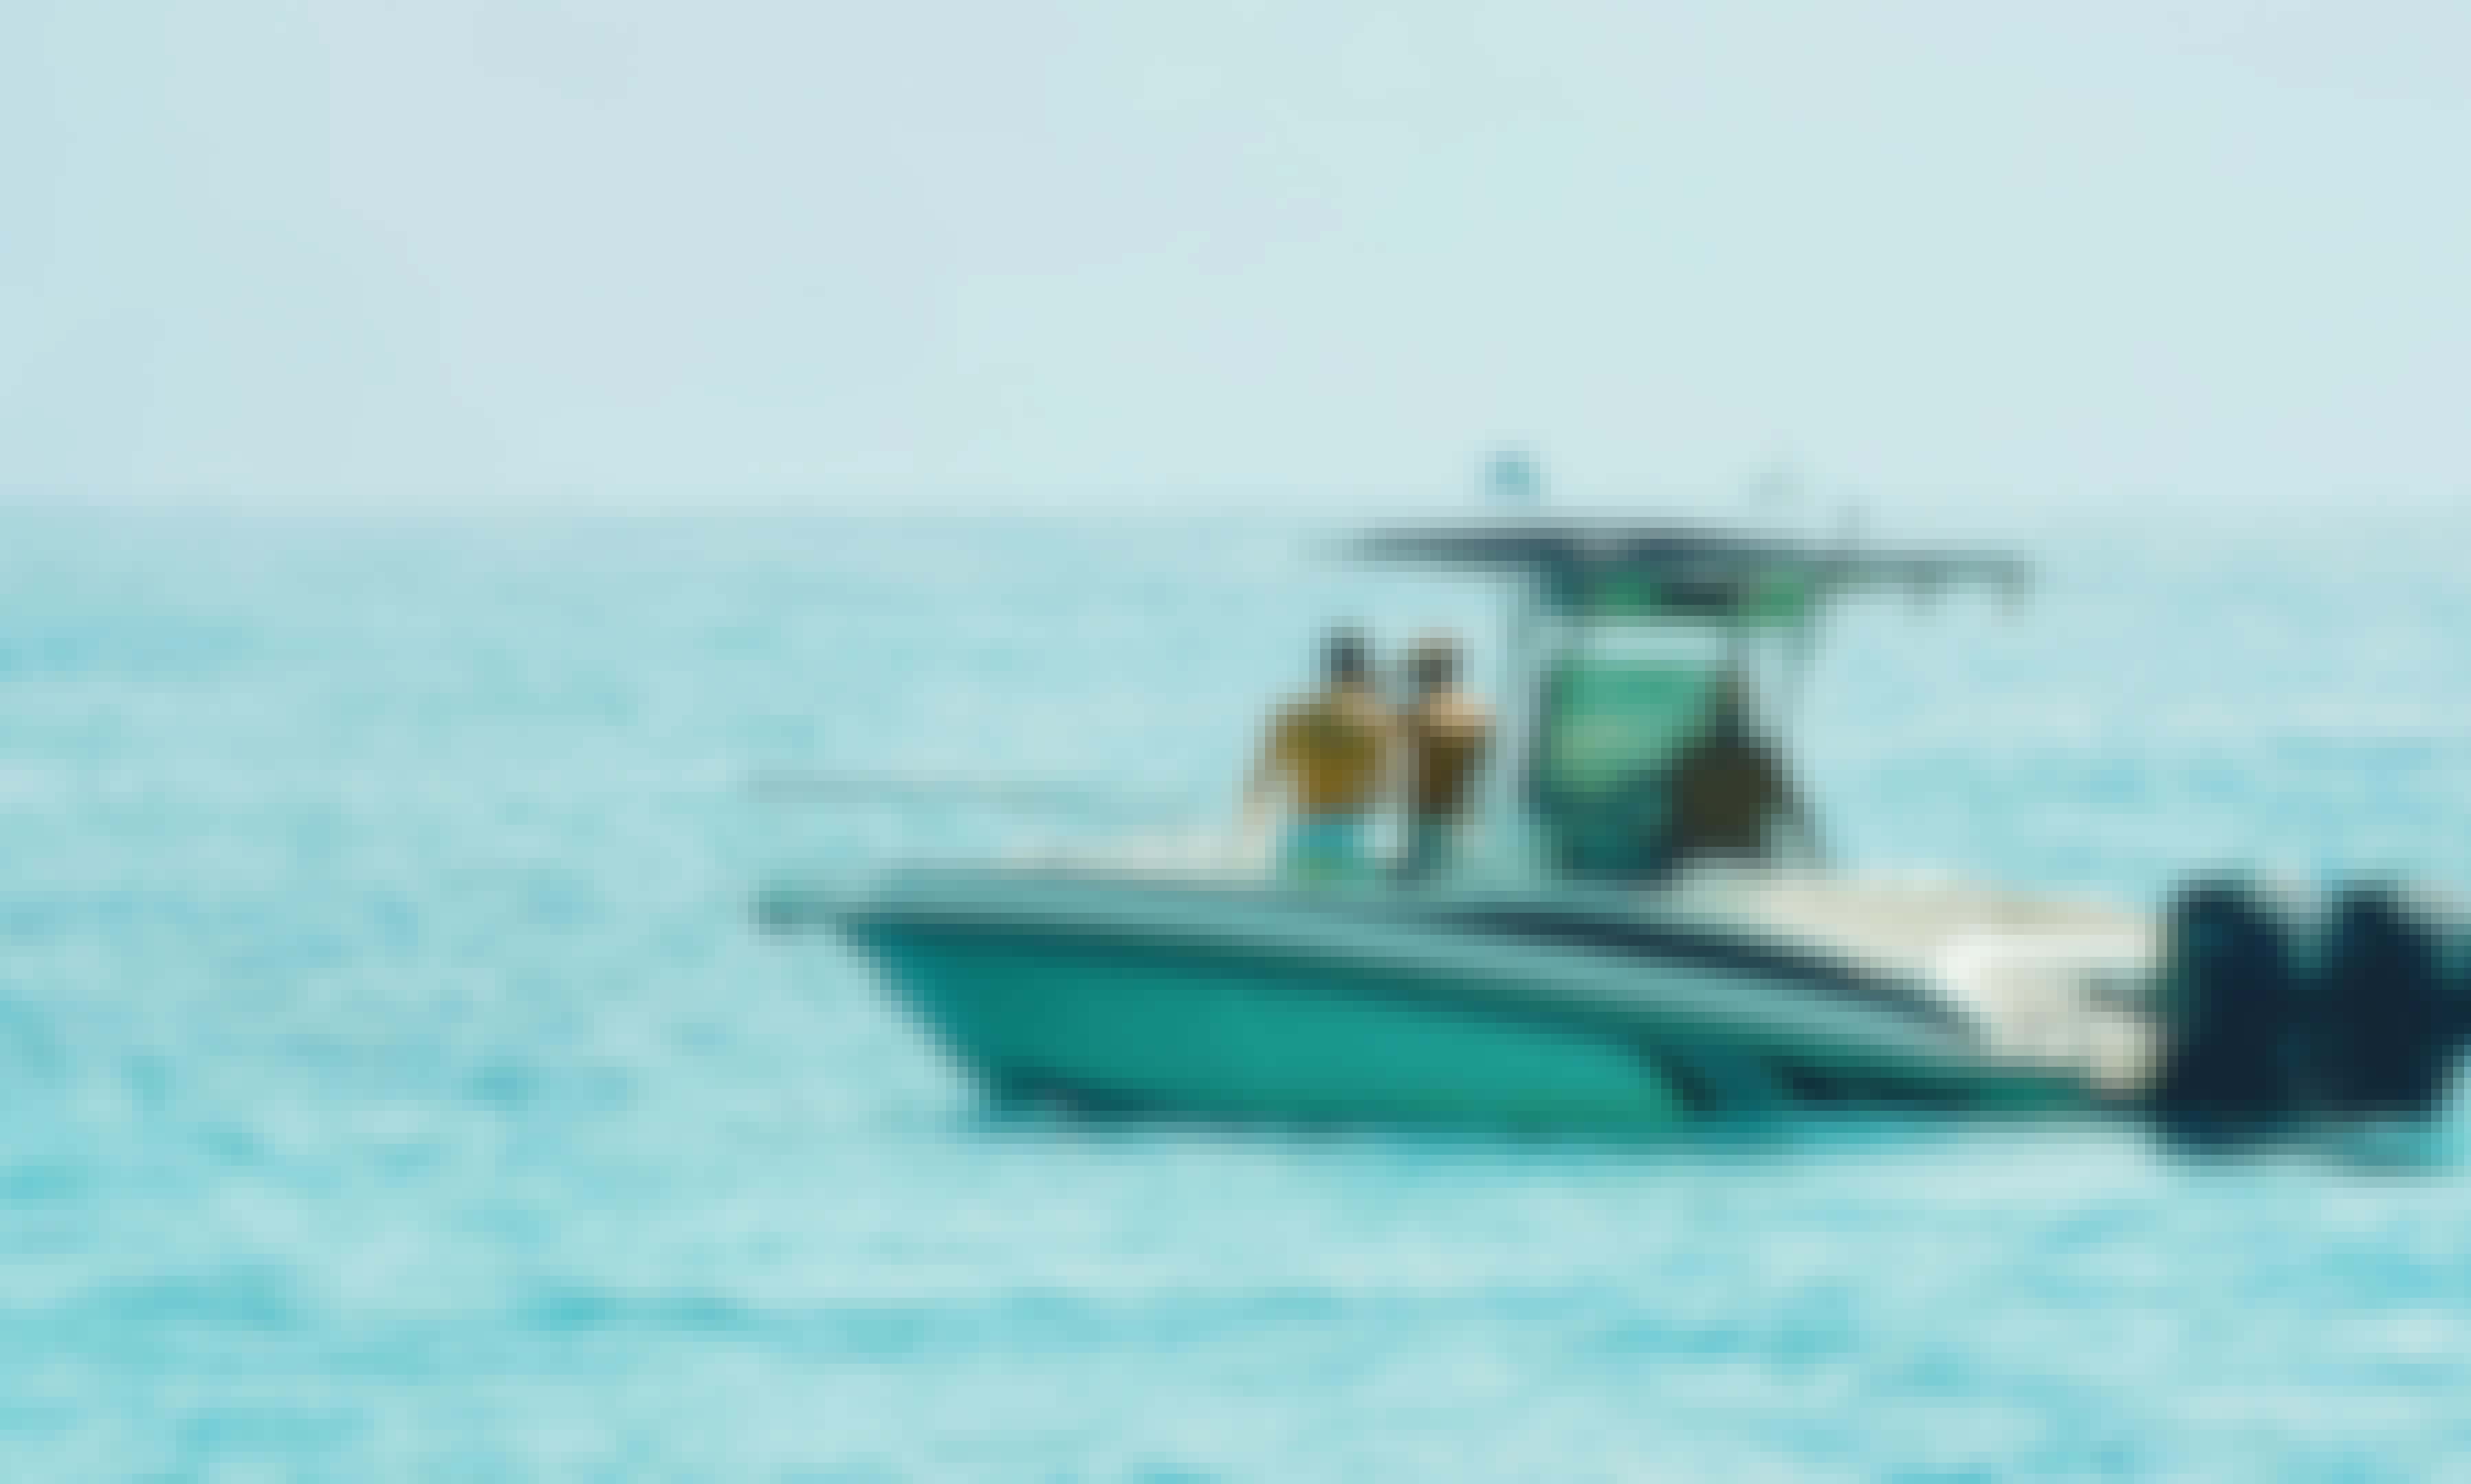 31' Boat Charter - Your Friend With A Boat